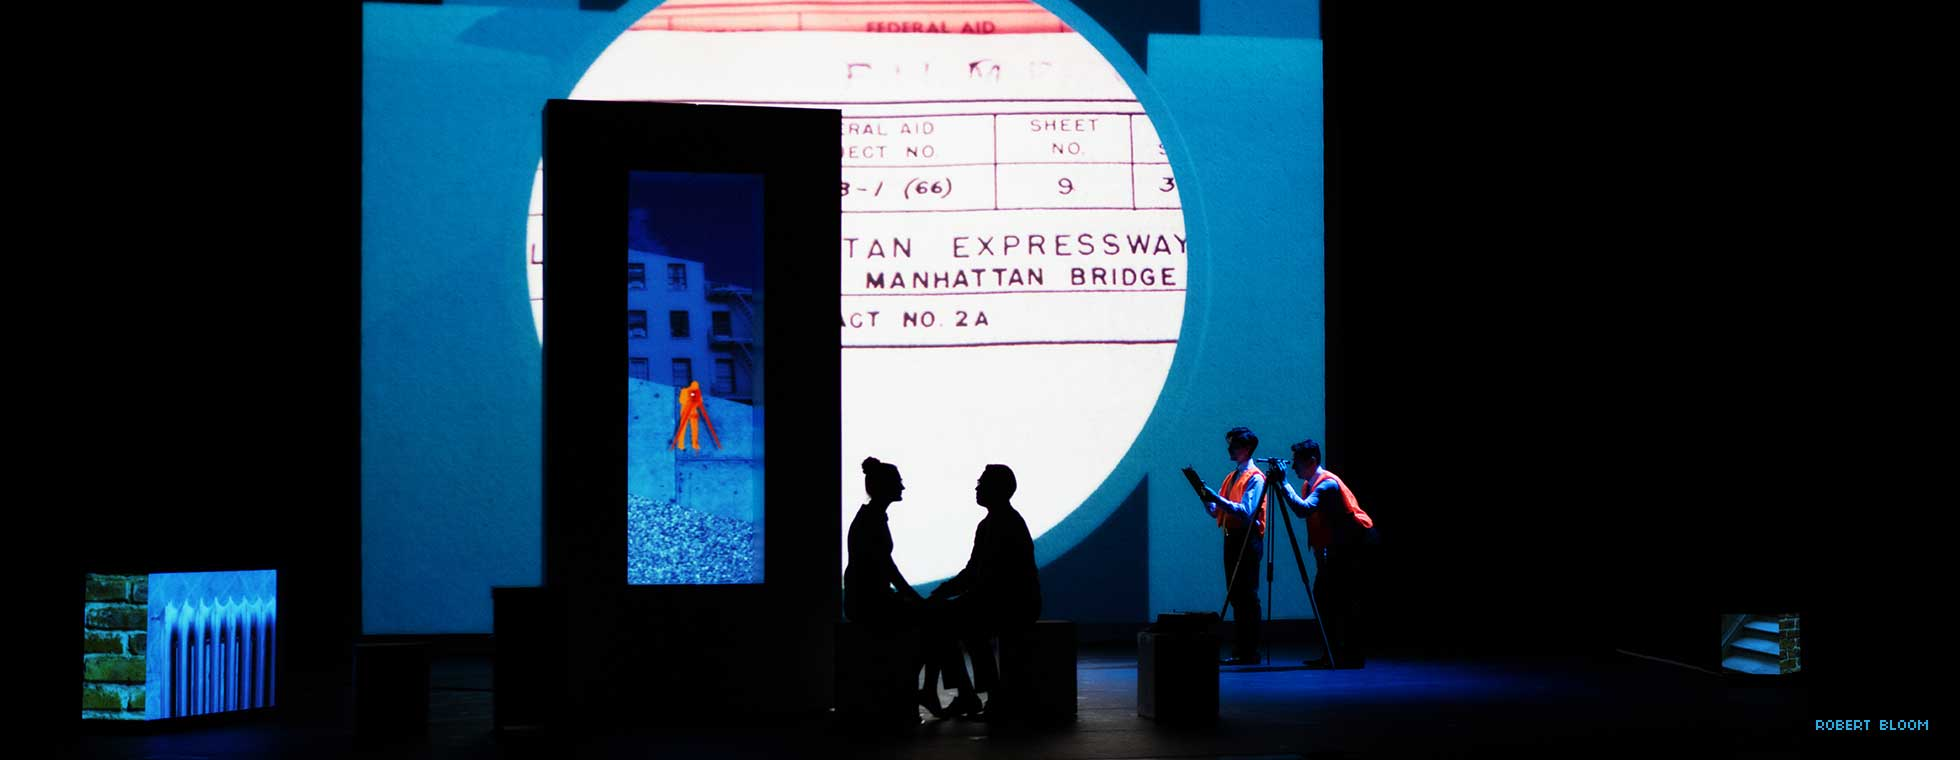 Two figures sit on stage surrounded by projected graphics and photos.